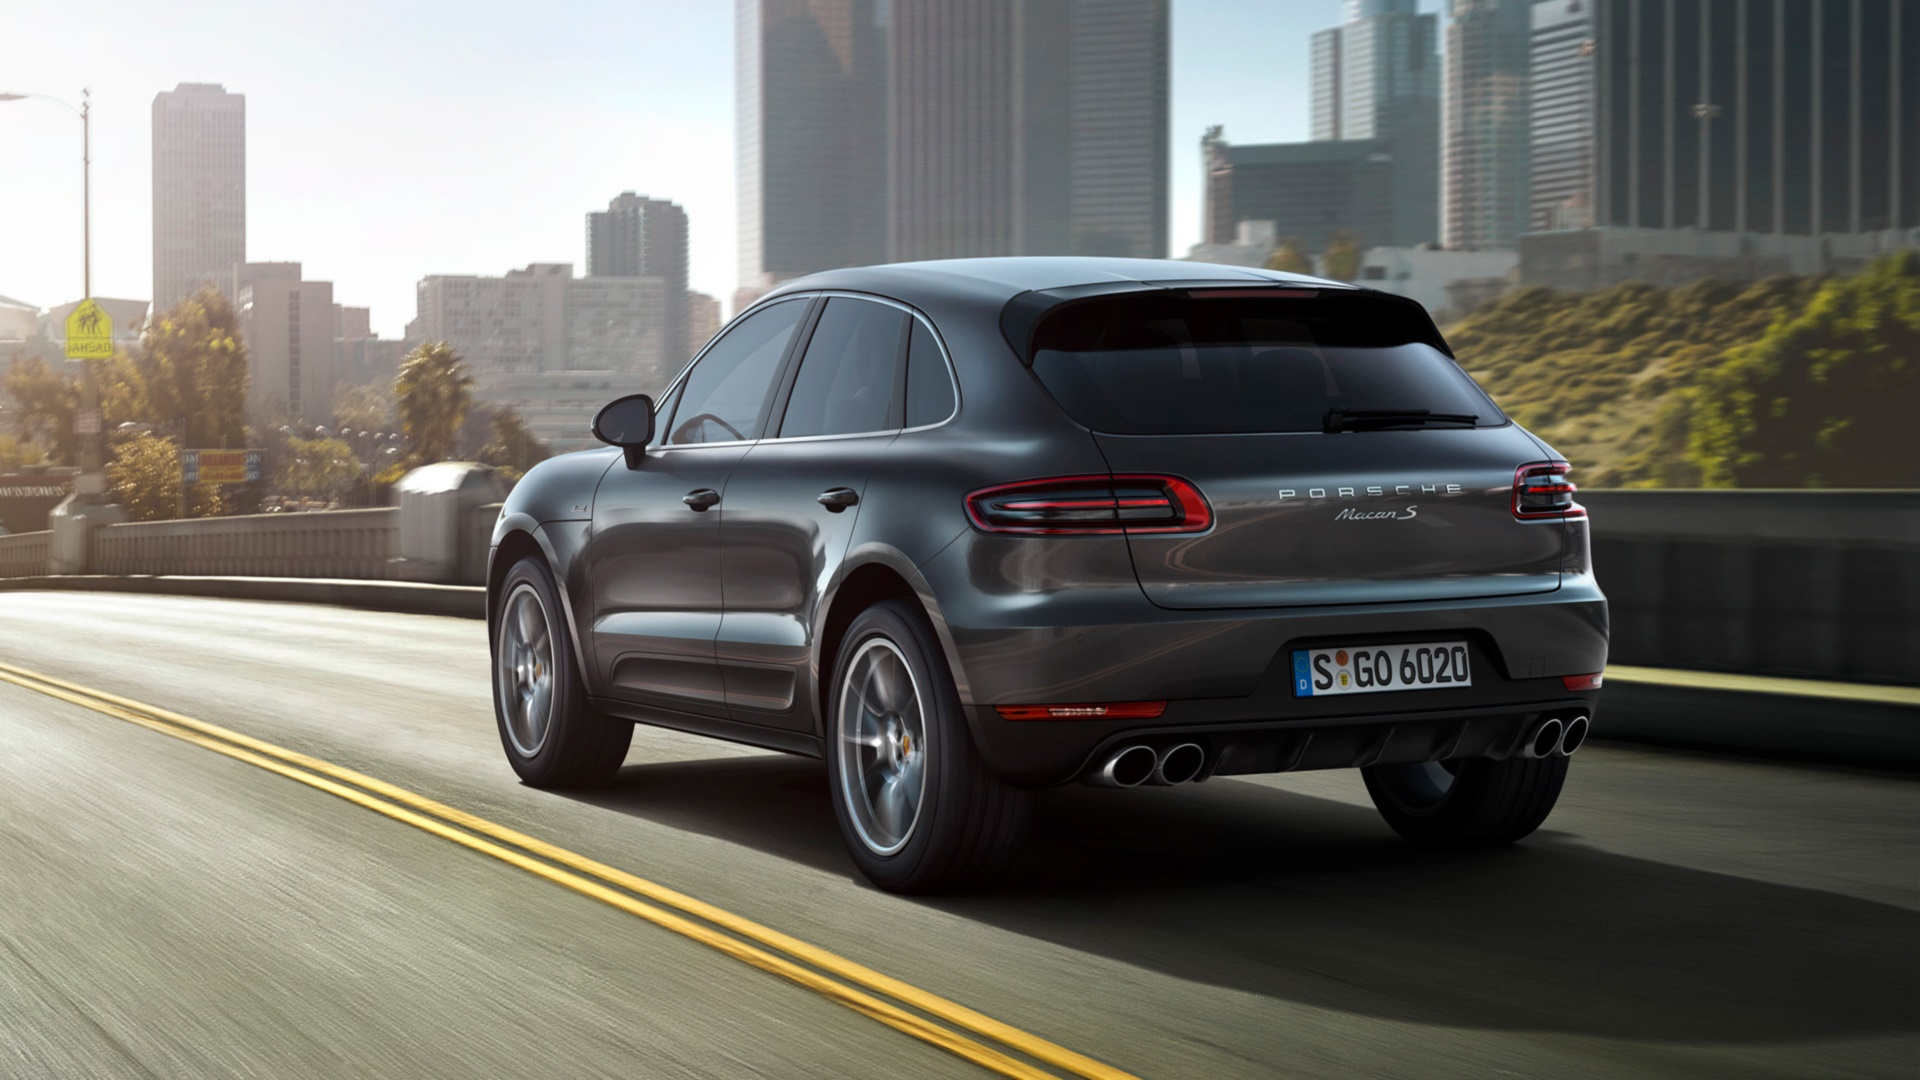 porsche macan best quality hd wallpapers 2015 all hd wallpapers. Black Bedroom Furniture Sets. Home Design Ideas